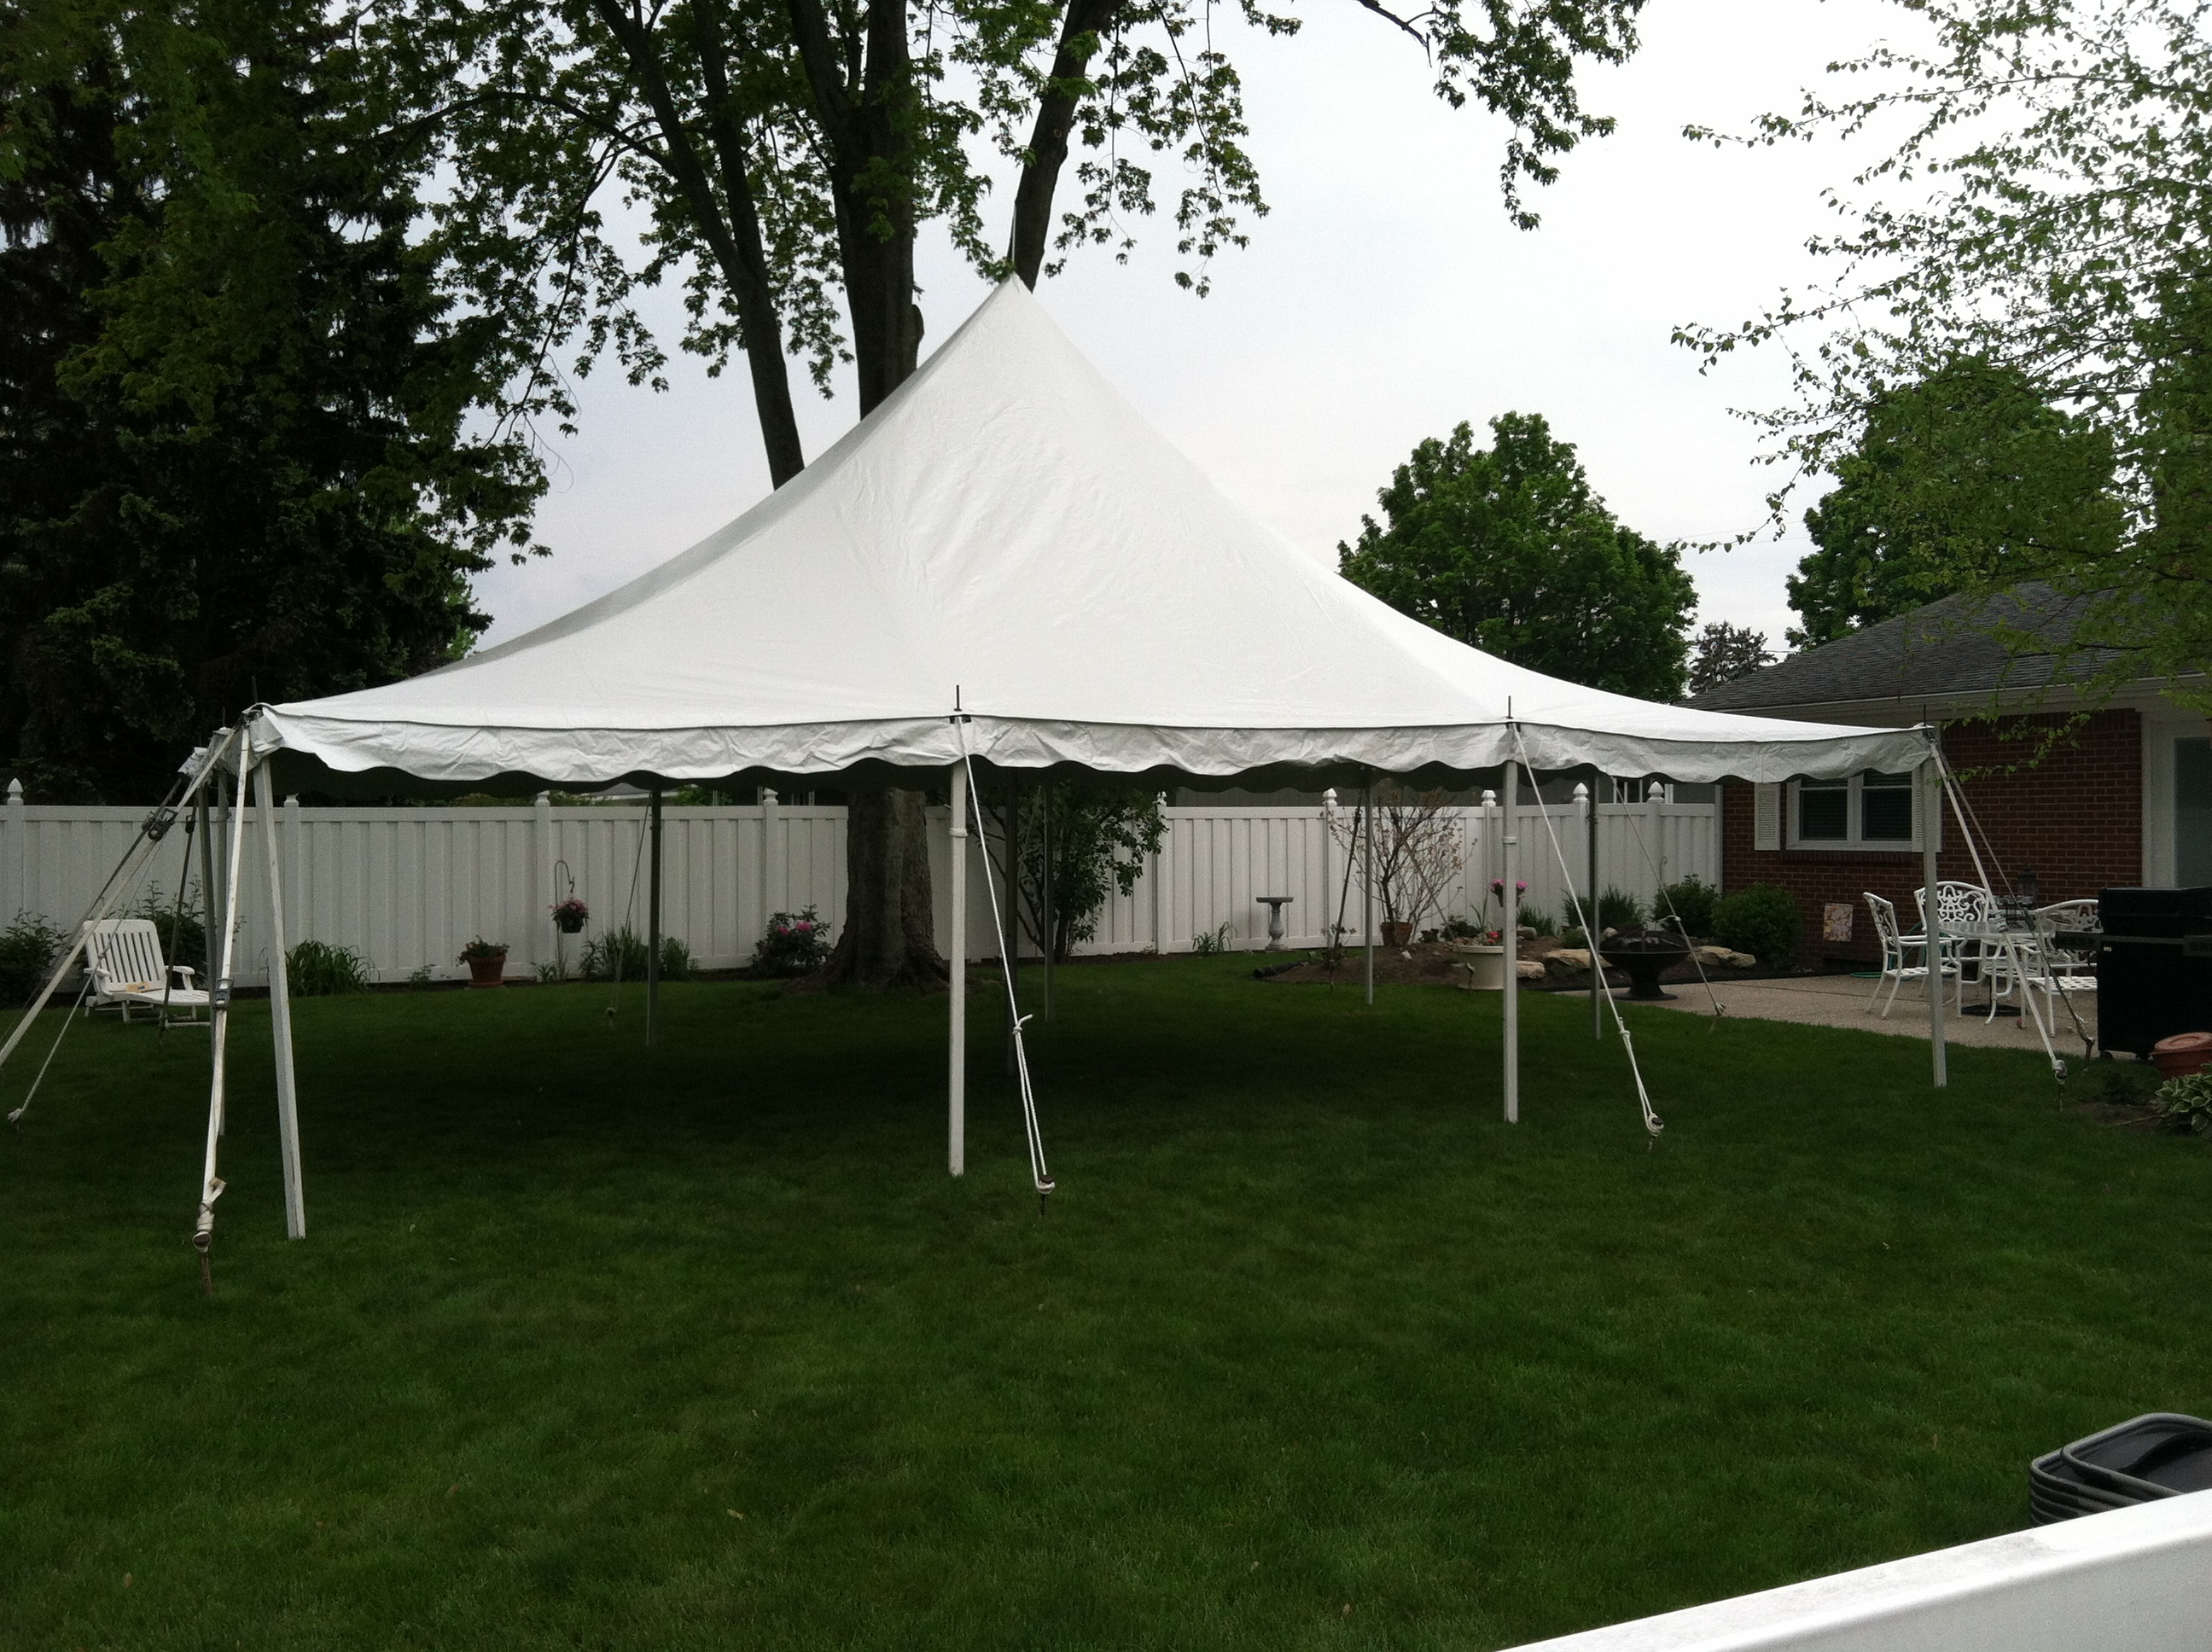 Tall Peak White Tension Tents & Tall Peak White Tension Tents | Grand Rapids Tent Rentals